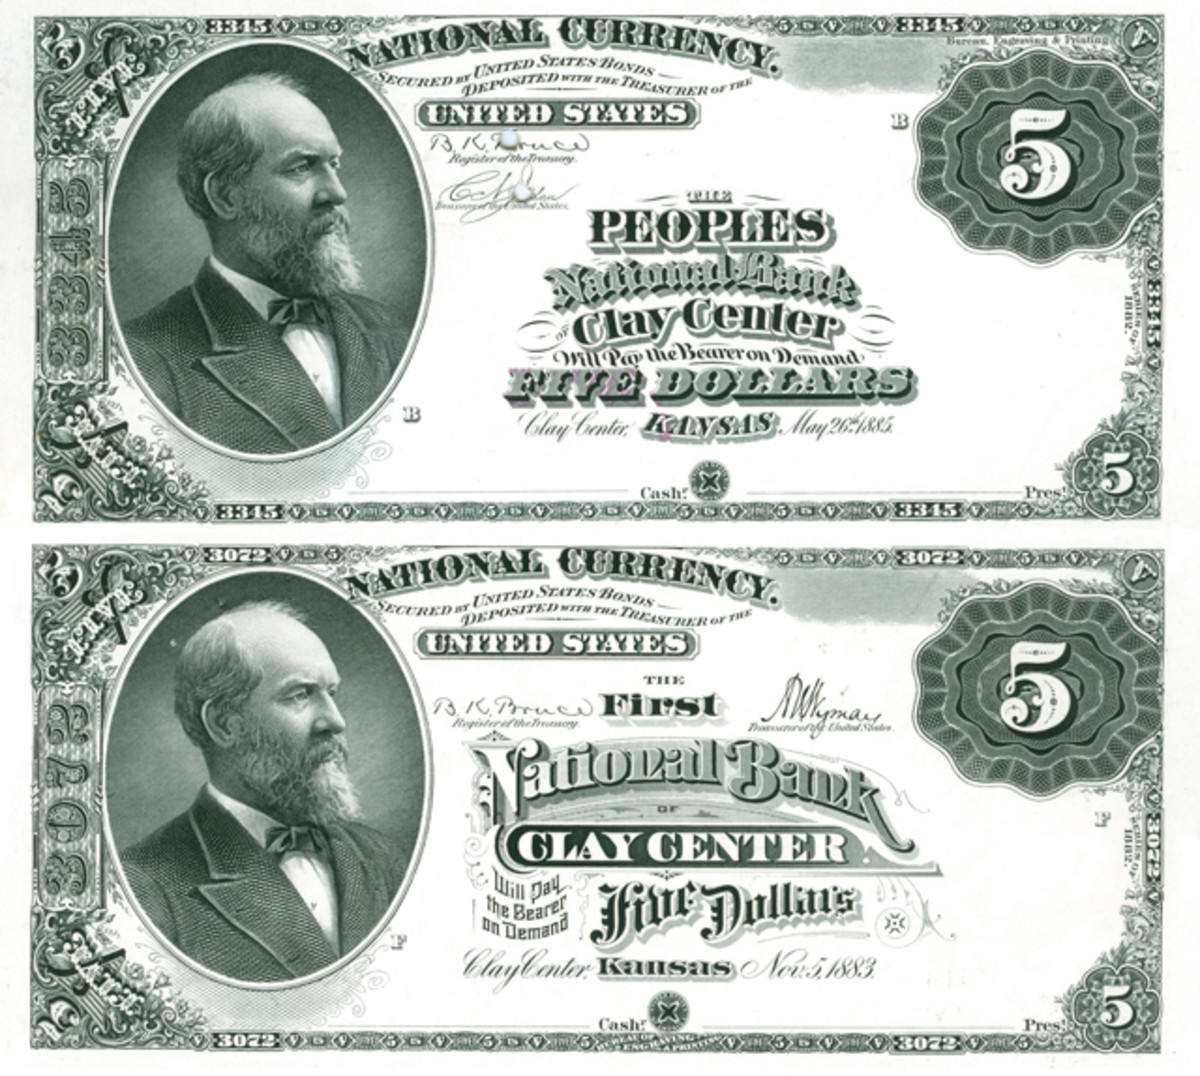 The Peoples National Bank of Clay Center, chartered in 1885 two years after The First National Bank, received $5 Brown Backs with lettering in the title blocks that was mostly borrowed from Original Series engraved dies. The officers of the bank found these notes to be distinctly inferior to the new circus posters being sent to The First National Bank, so they complained in 1888. F.H. Head was in on the organization of the bank and was now its cashier. The First National Bank of Clay Center received a spectacular circus poster layout when its patented lettered plate was purged and replaced by the Bureau of Engraving and Printing in 1887.